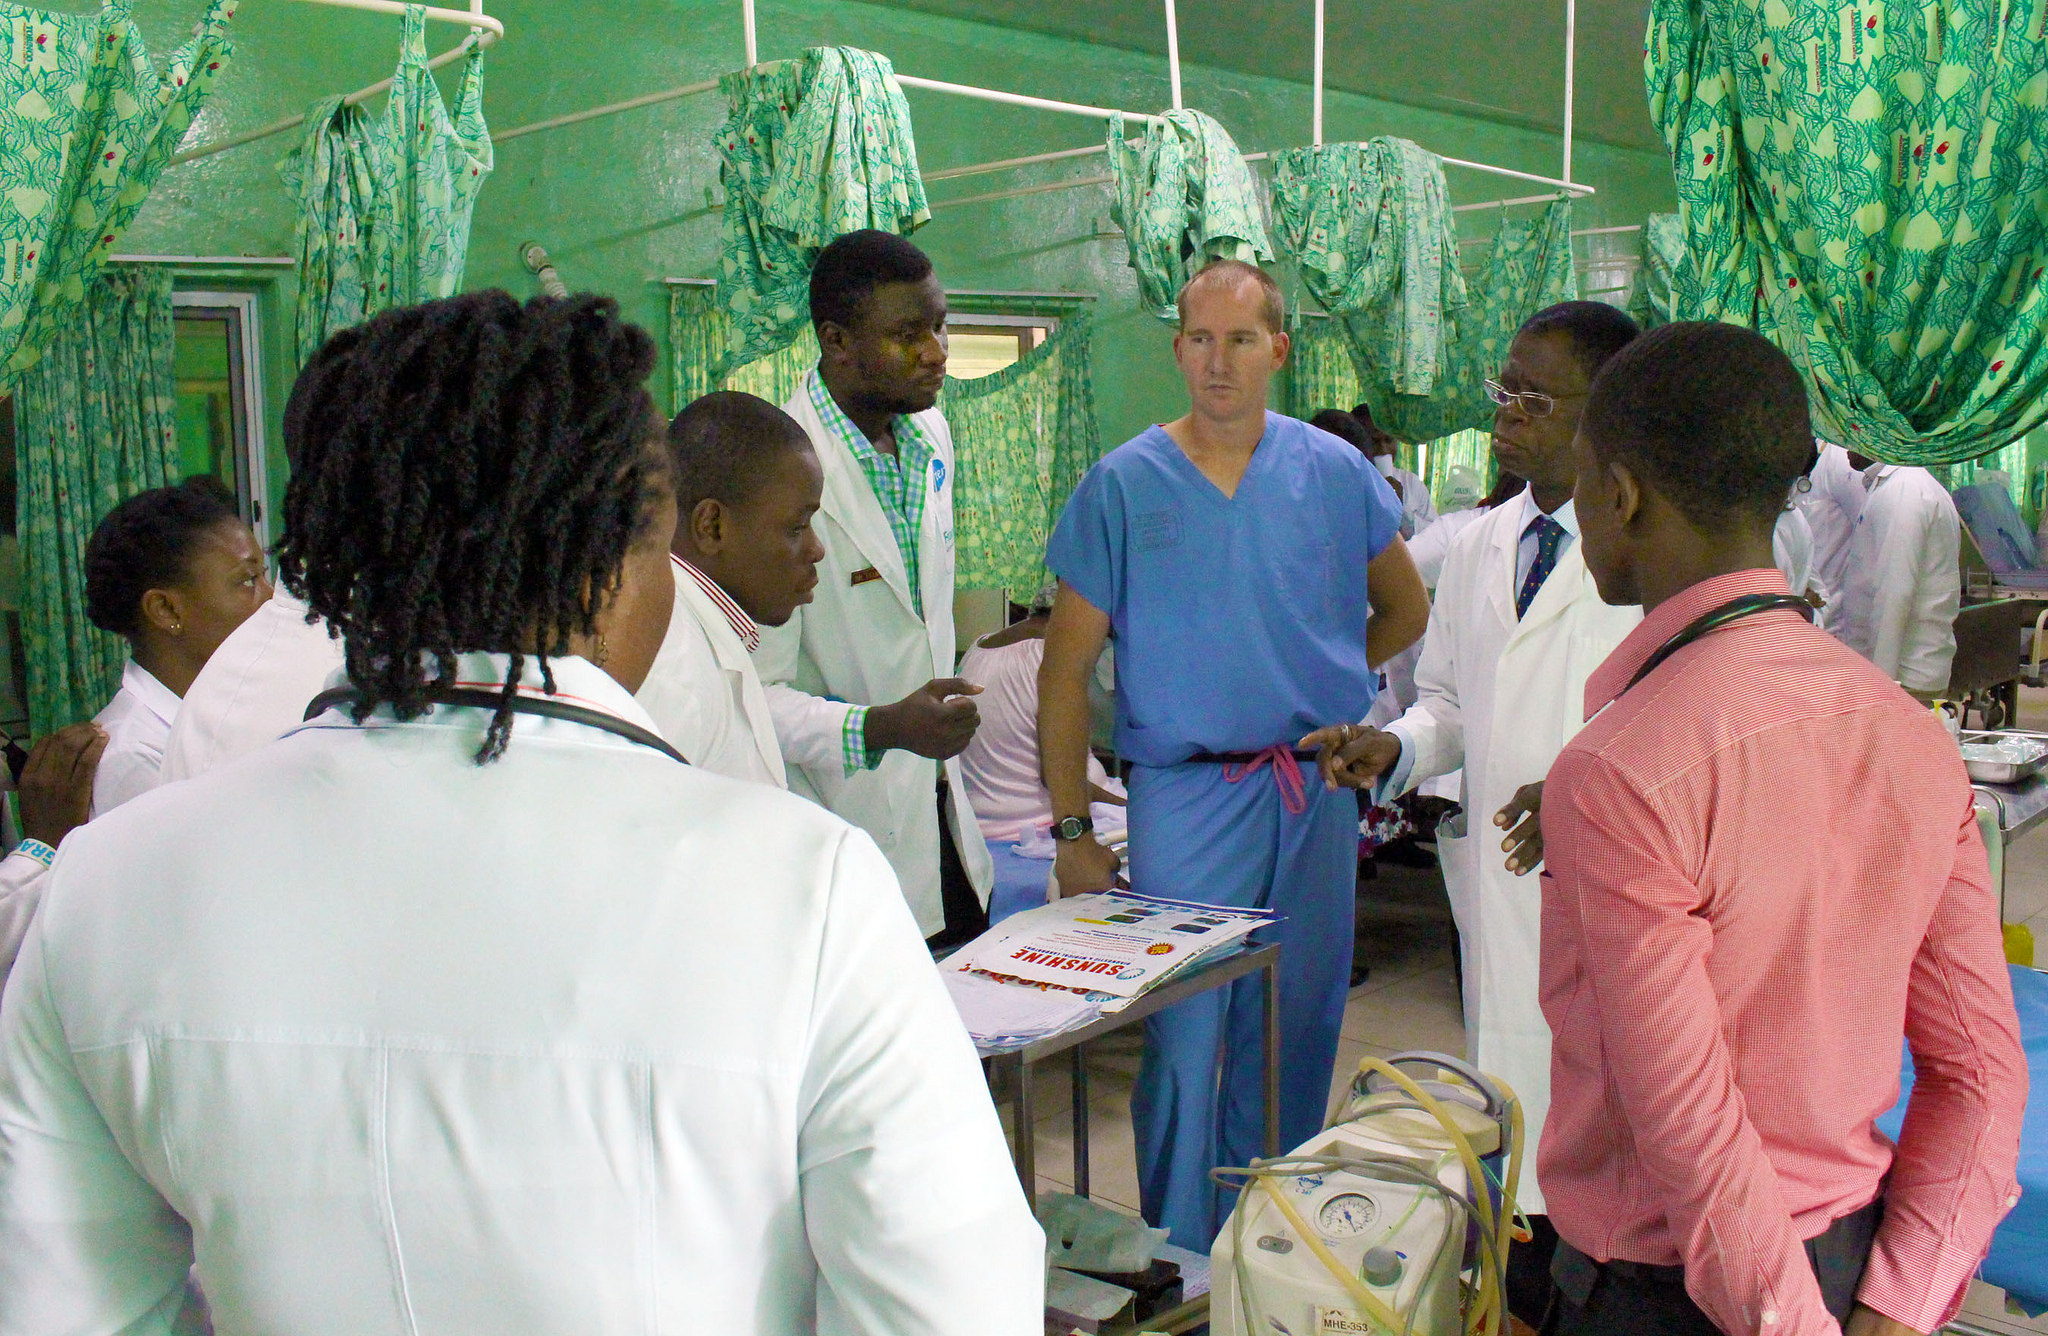 U.S. Army Maj. Warren Johnson, an emergency room physician with the 30th Medical Brigade and along with medical students make their patient rounds in the emergency room at the 37th Military Hospital in Accra, Ghana on Aug. 3, during Medical Readiness Training Exercise (MEDRETE) 15-2. MEDRETE 15-2 is part of a series of exercises designed to build the medical capacity of partner nation militaries in Africa. (U.S. Army Africa photo by Capt. Charles An)